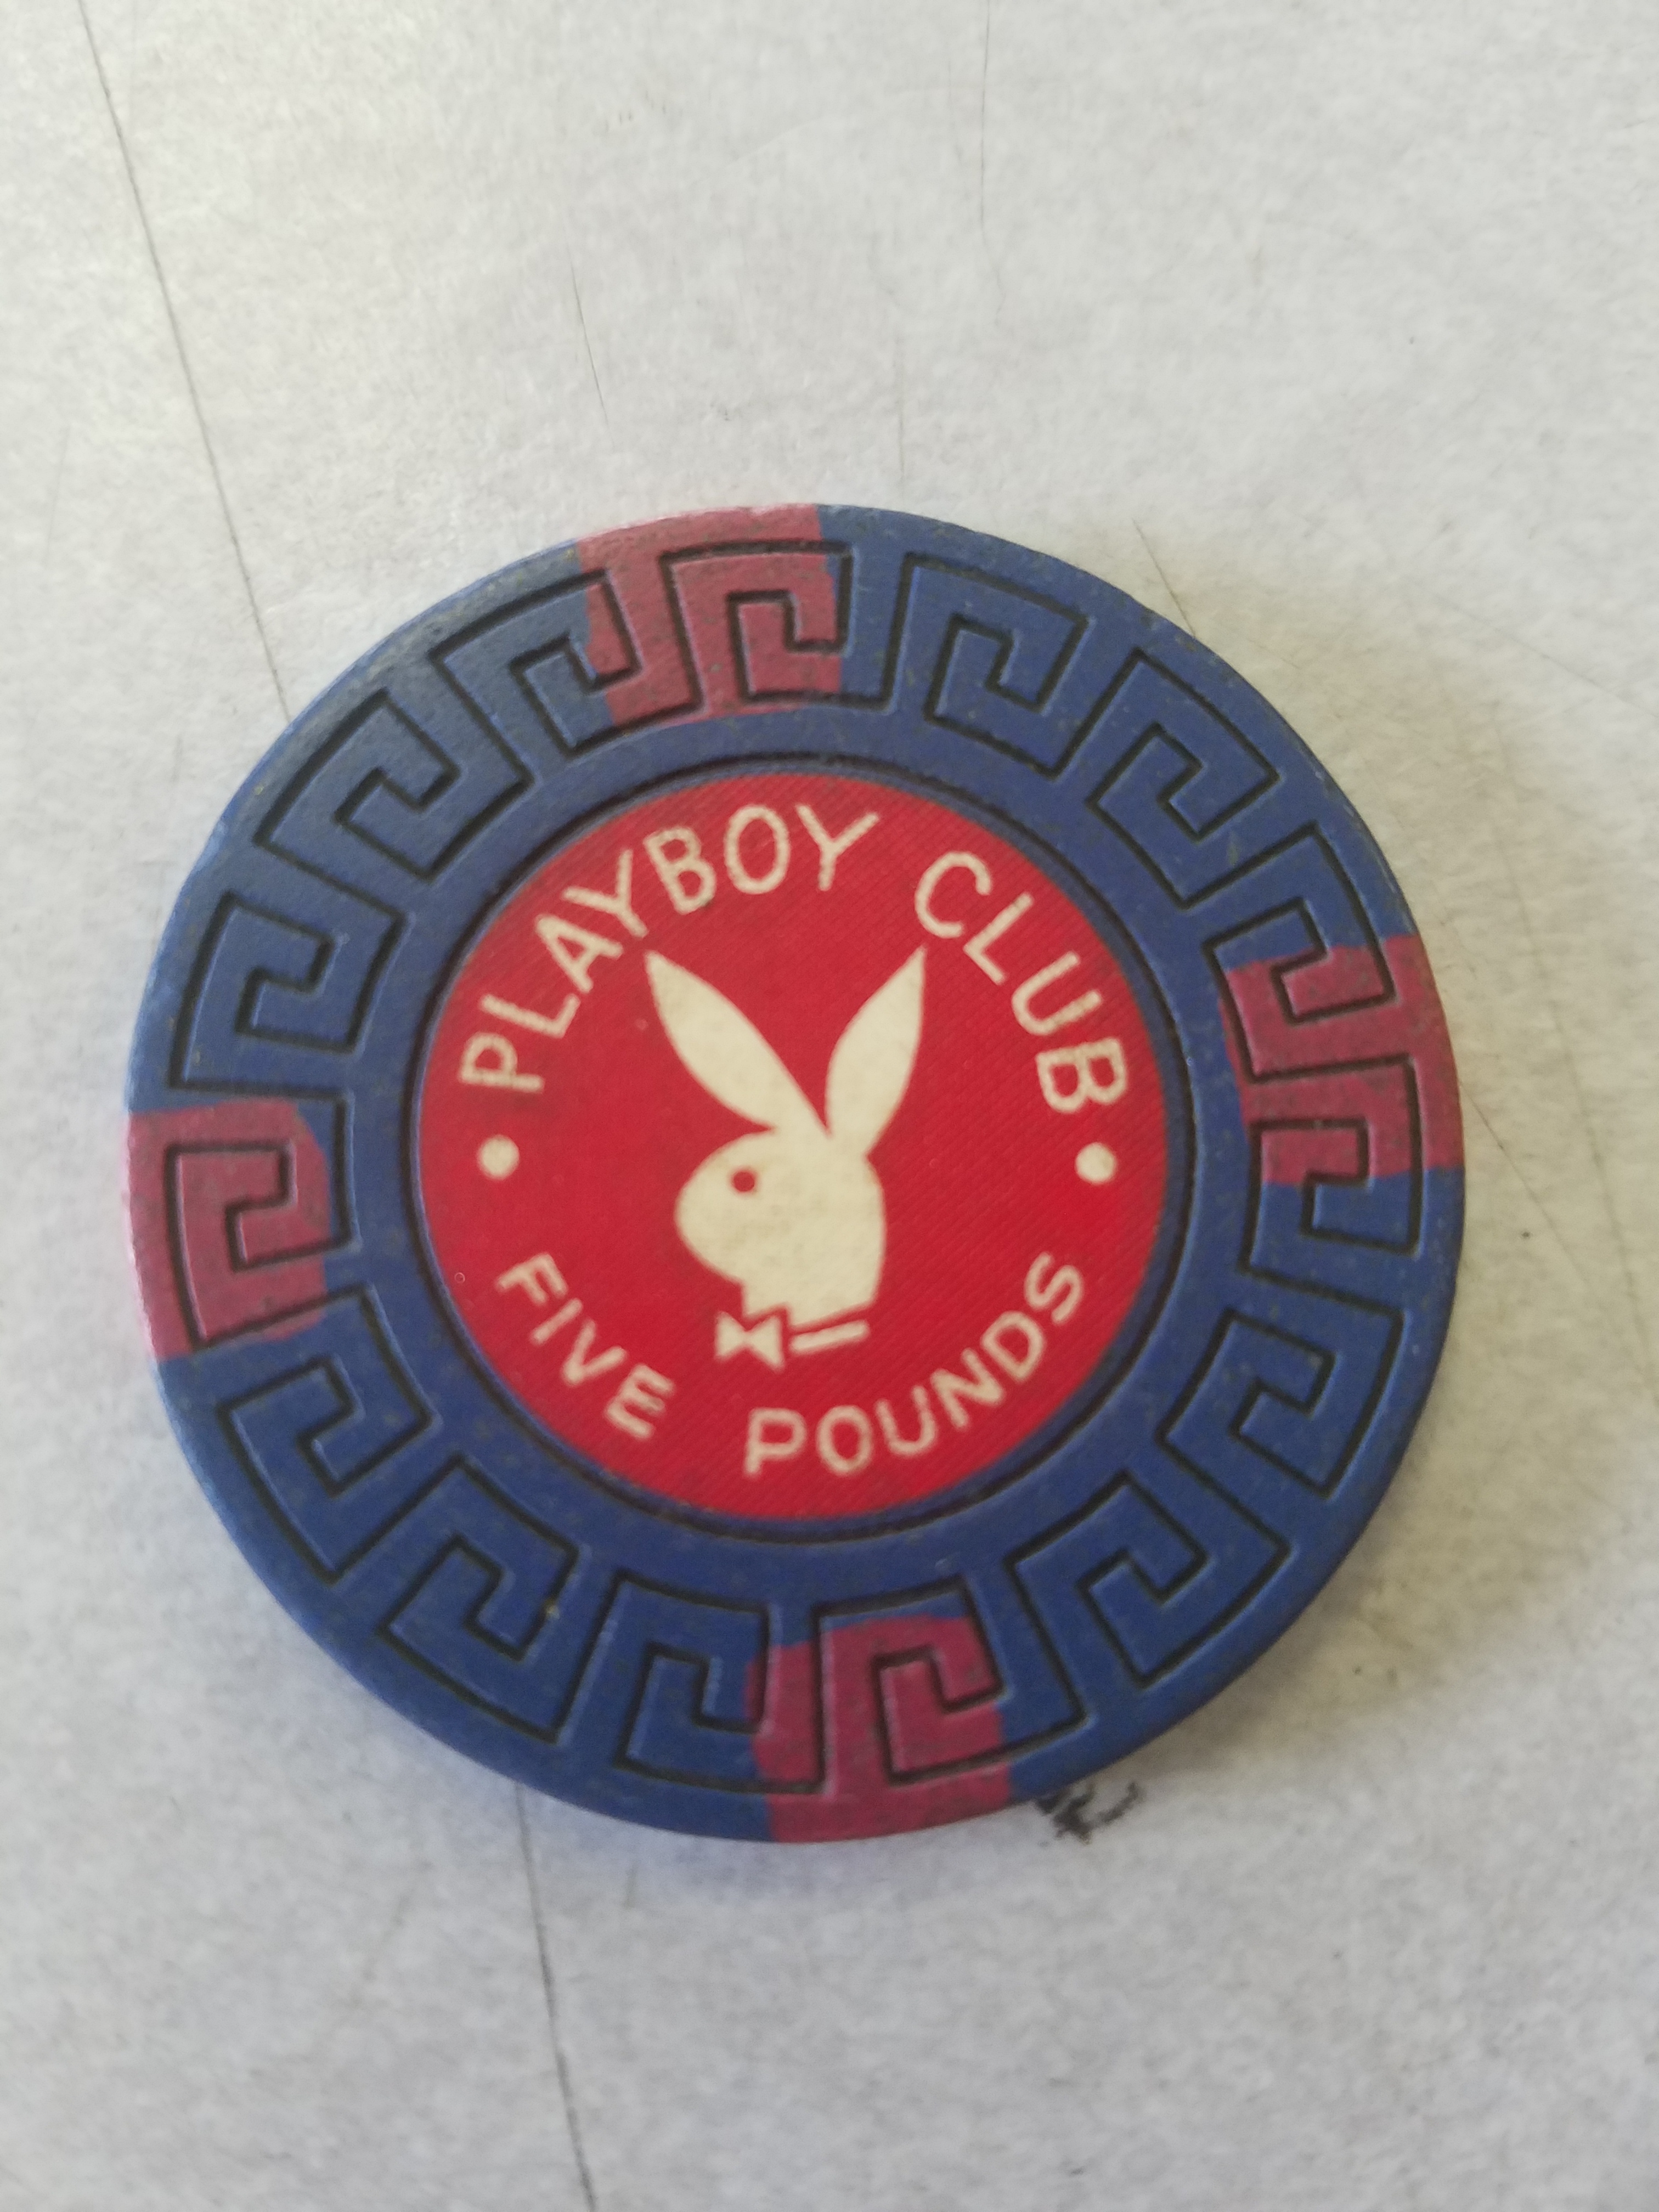 Playboy Club London 5 Pound Greek Key